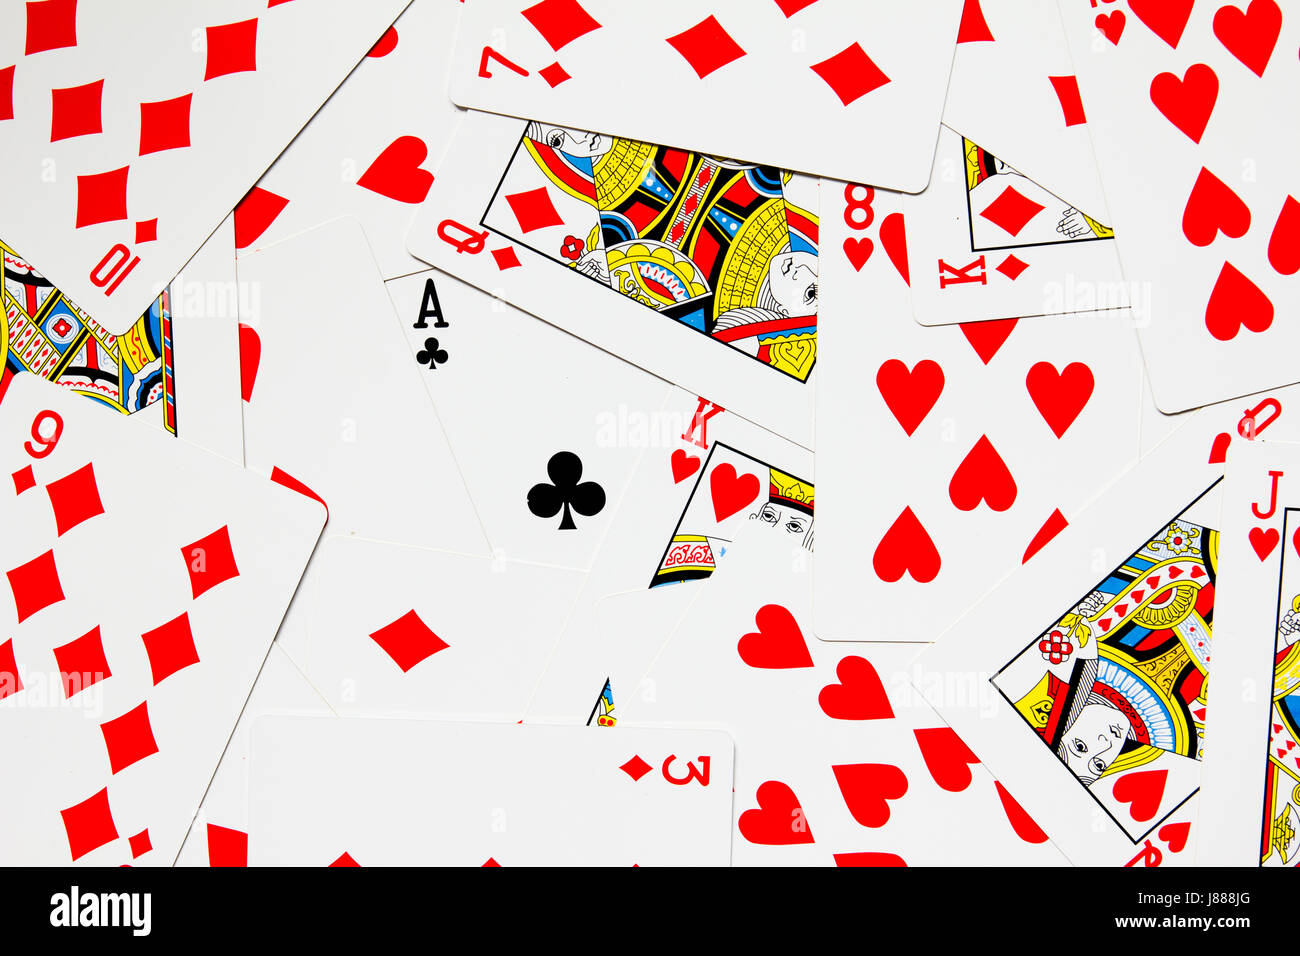 cliparts suit royalty and photo poker card vectors vector diamond stock free